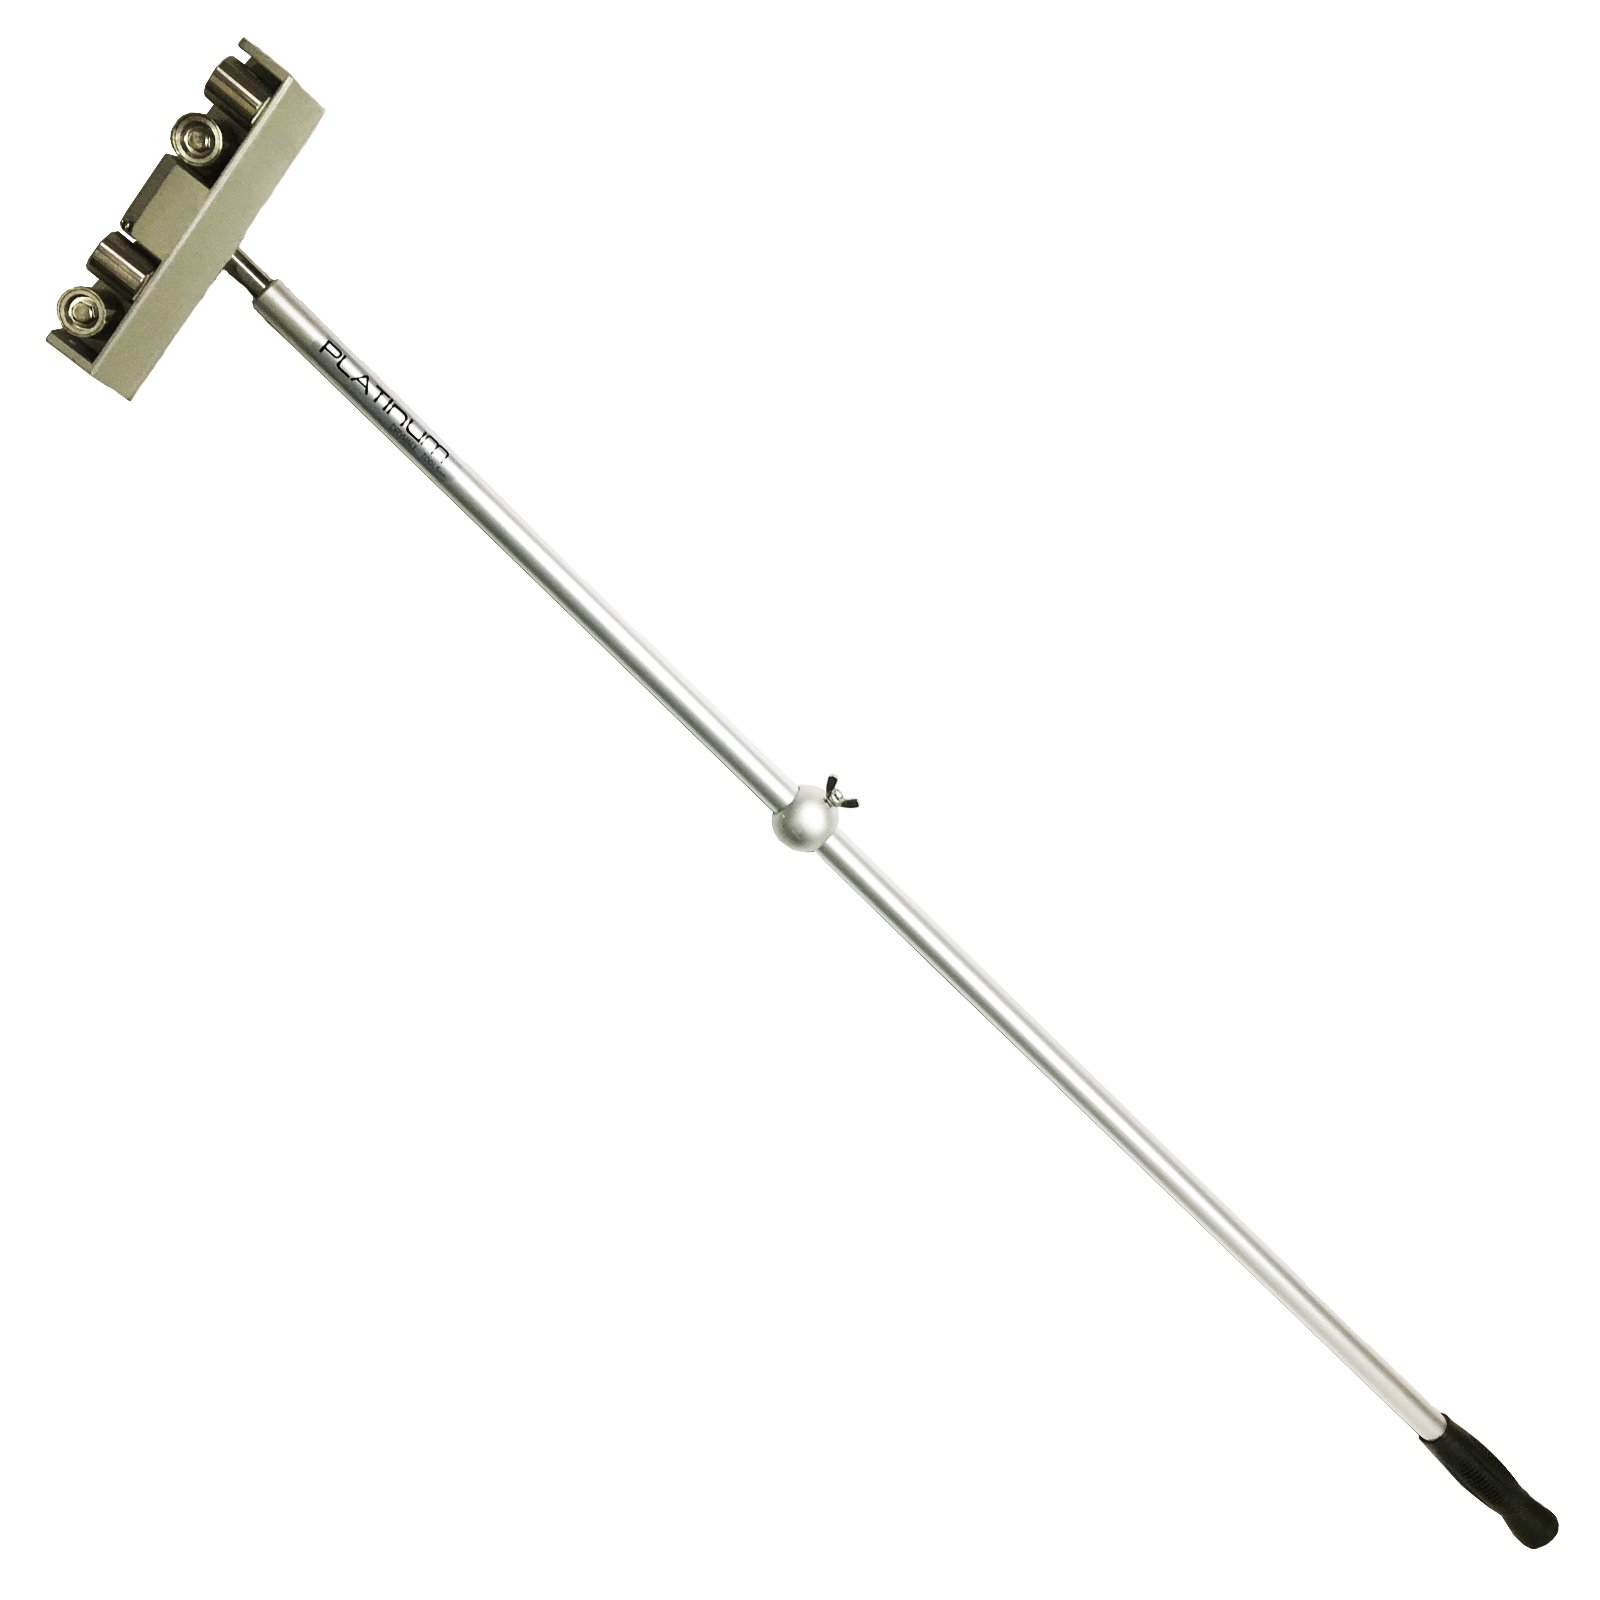 Platinum Drywall Tools Inside Corner Roller with Handle